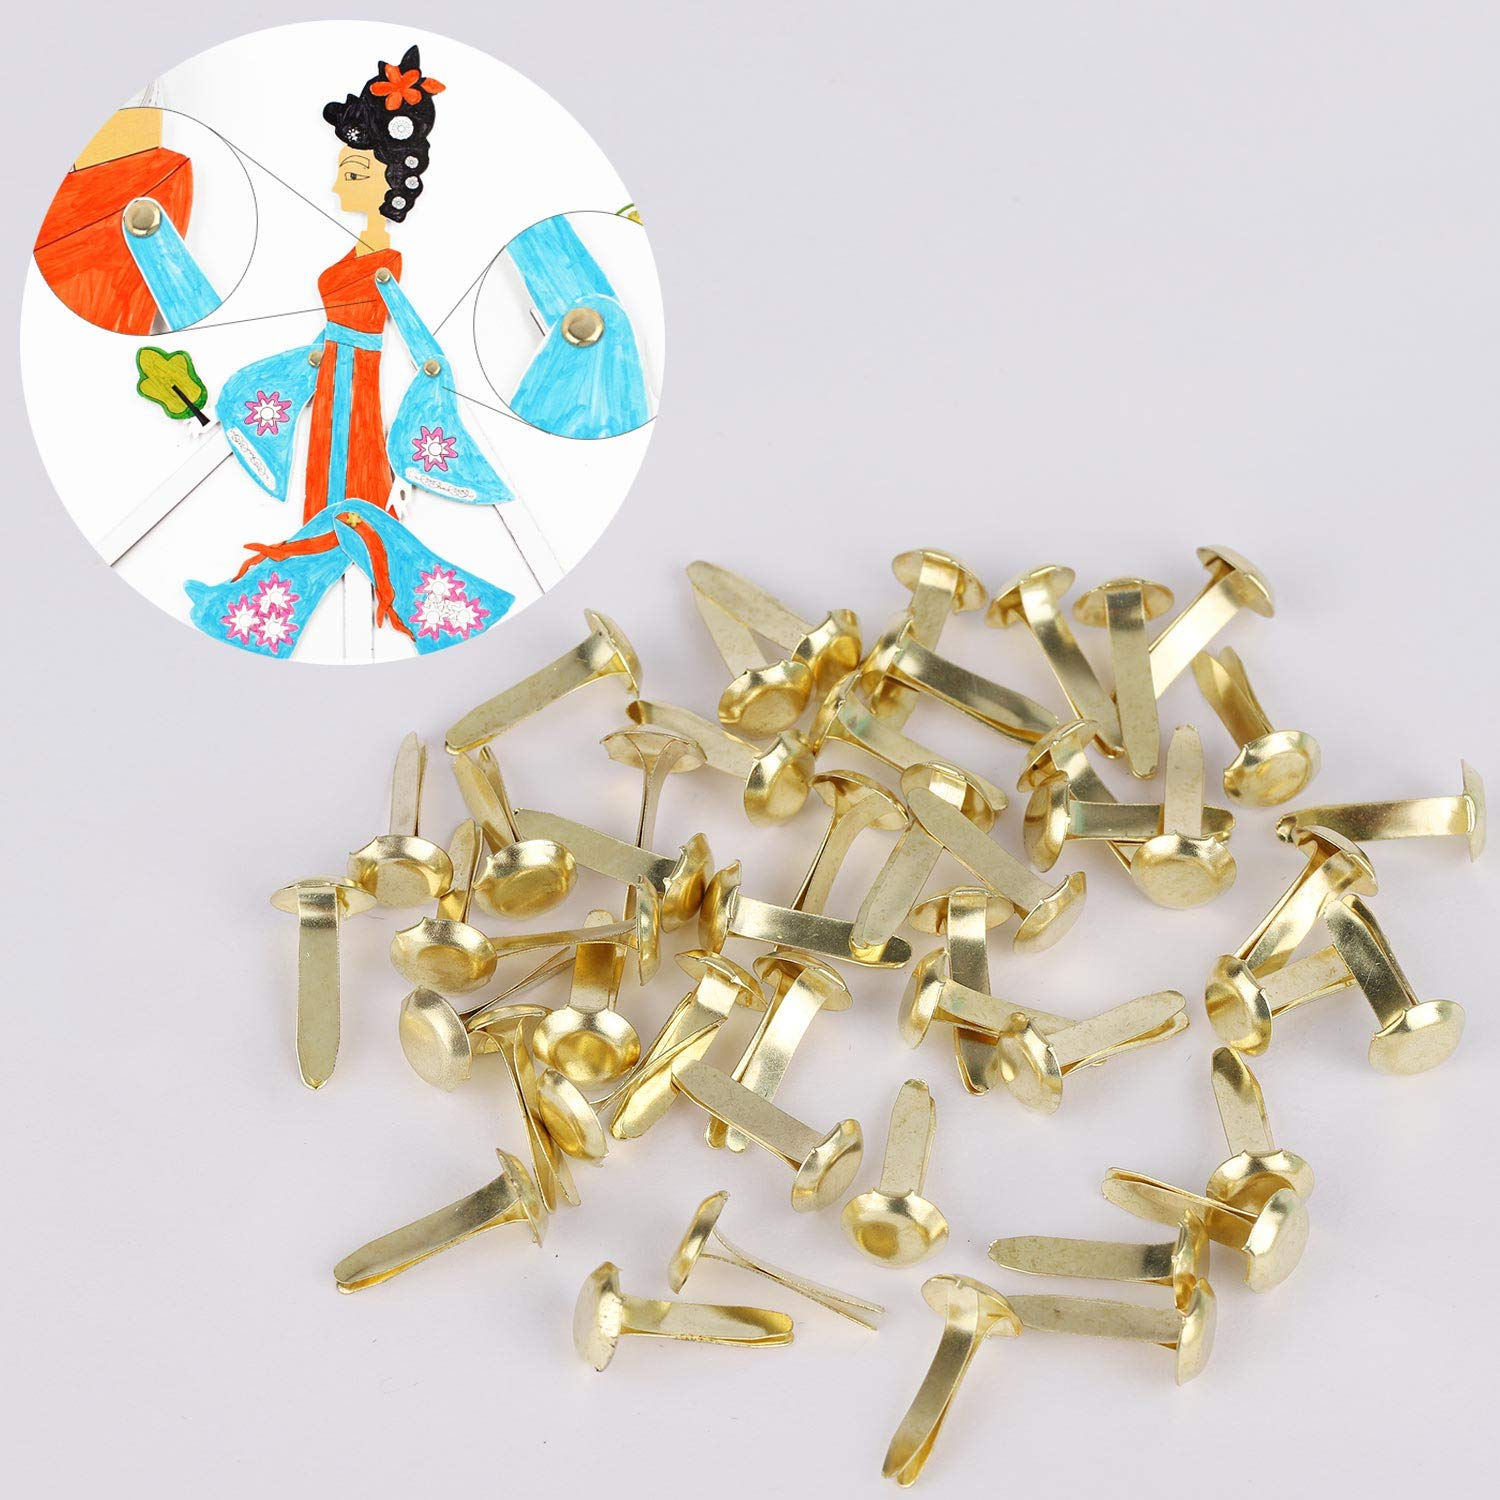 1000 Pieces Mini Brads Paper Fasteners Steel Brad Fasteners for Scrapbooking//DIY Paper Crafts 5 Different Sizes